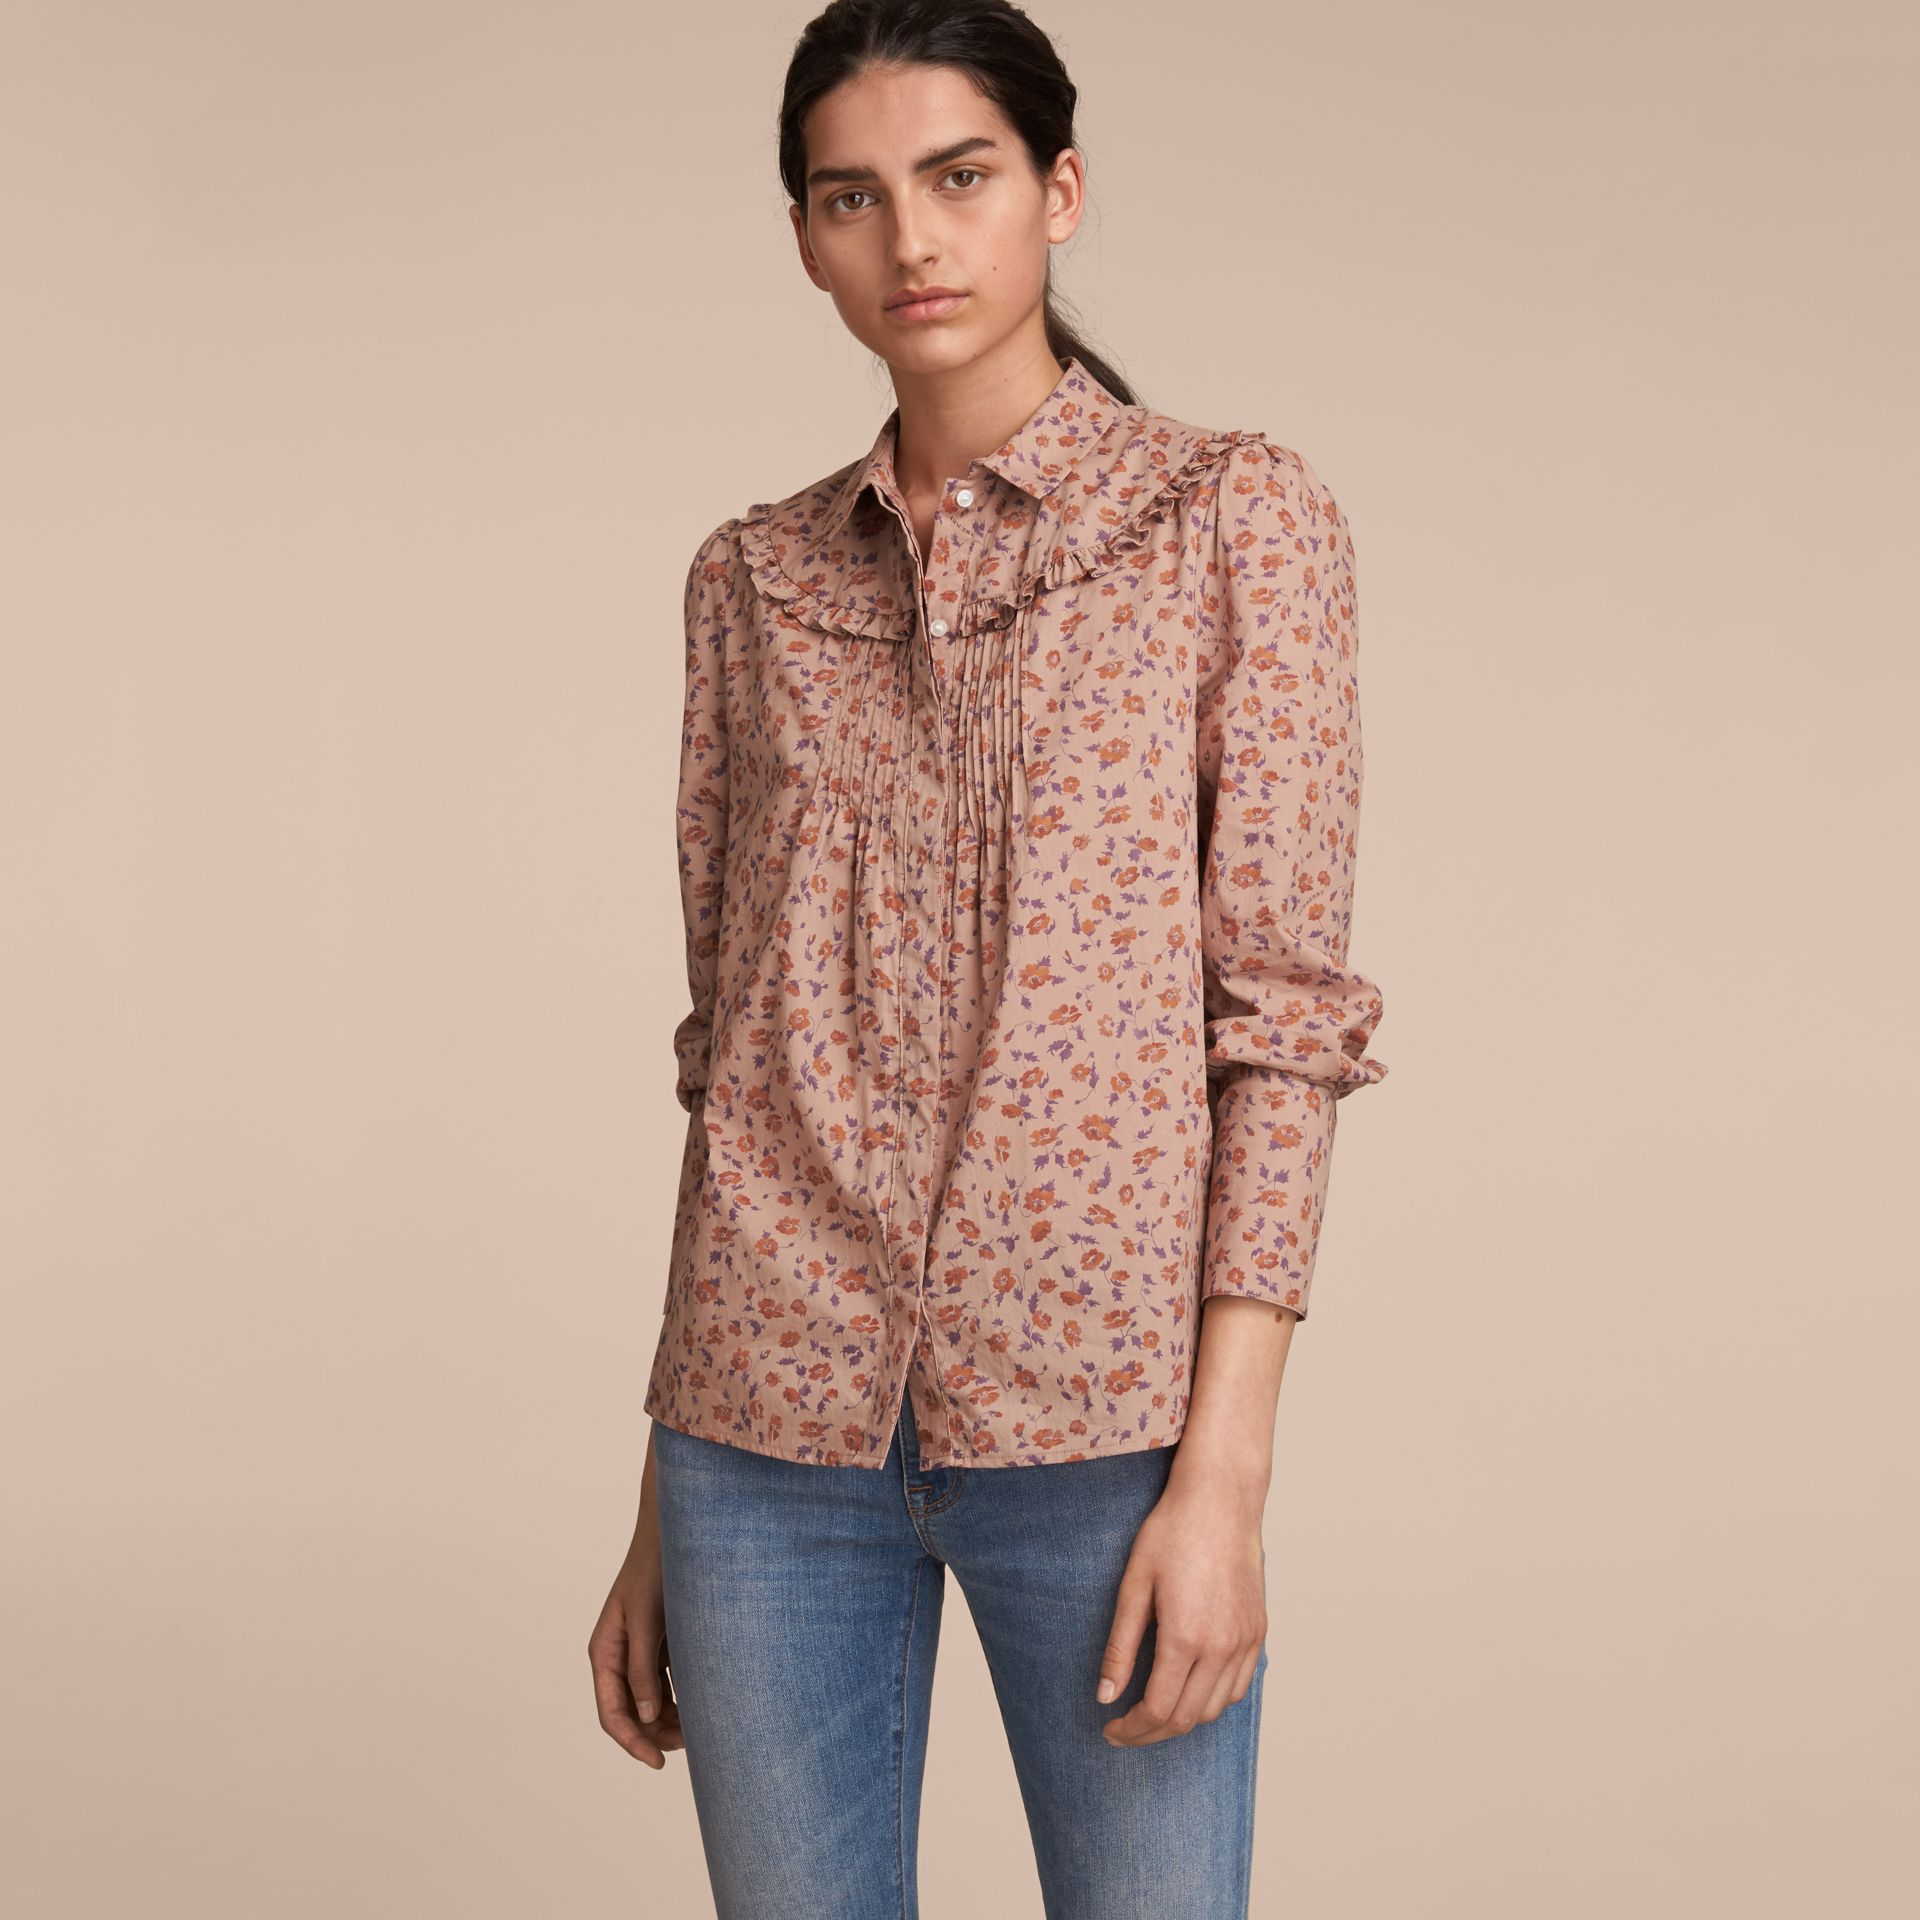 Ruffle Yoke Floral Print Cotton Shirt in Light Copper - Women | Burberry Canada - gallery image 6